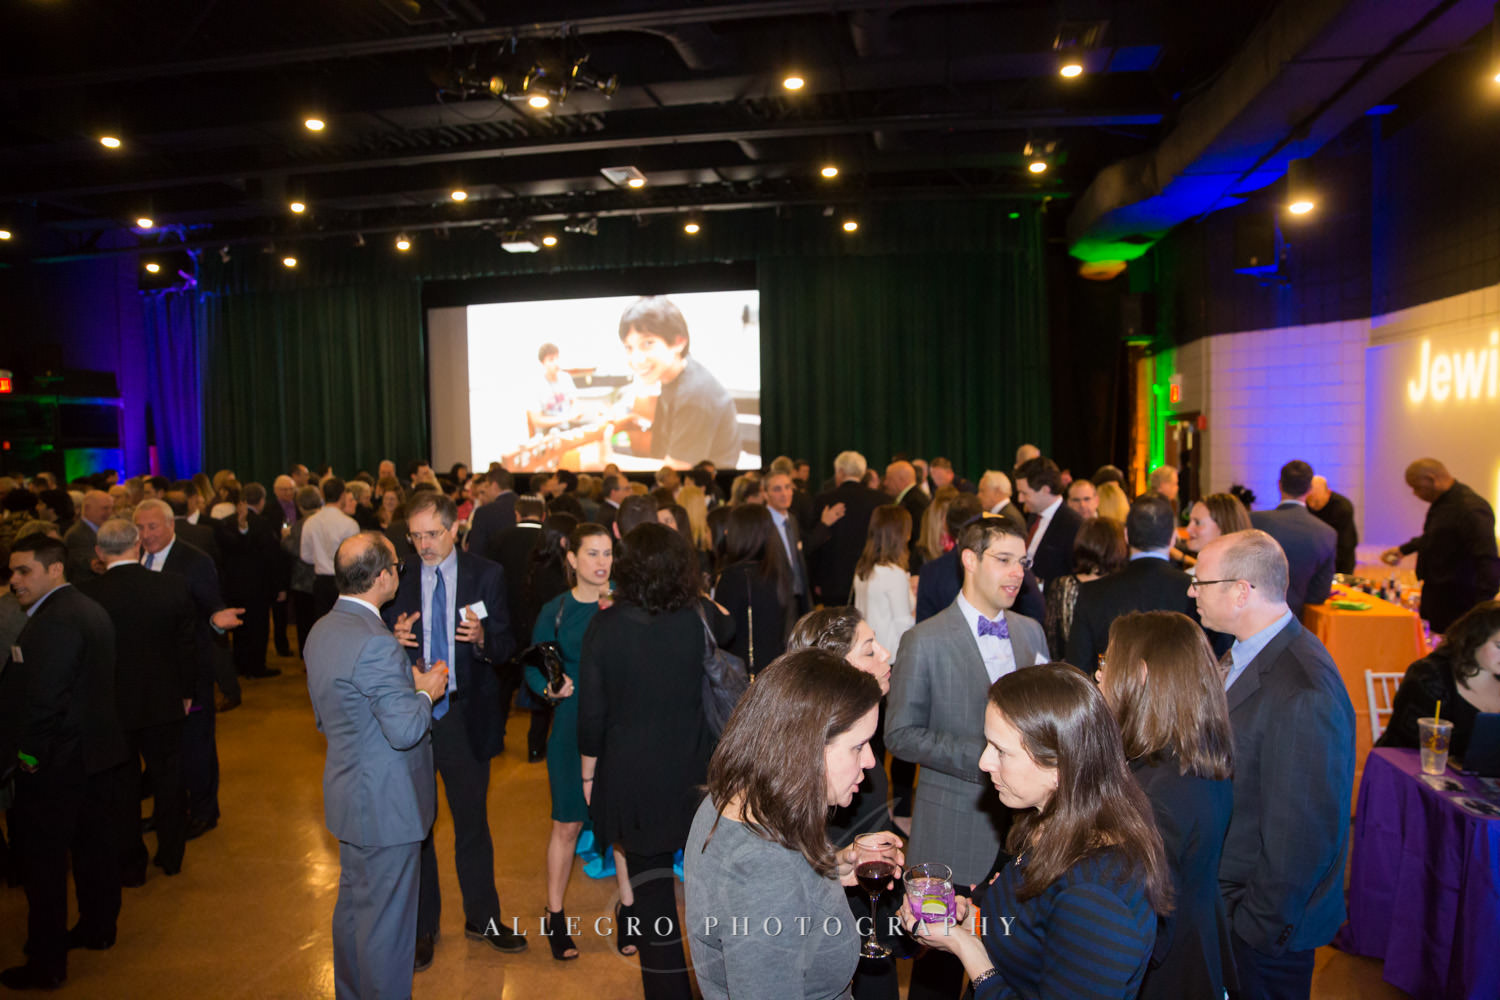 Guests mingling at nonprofit event shot by Allegro Photography